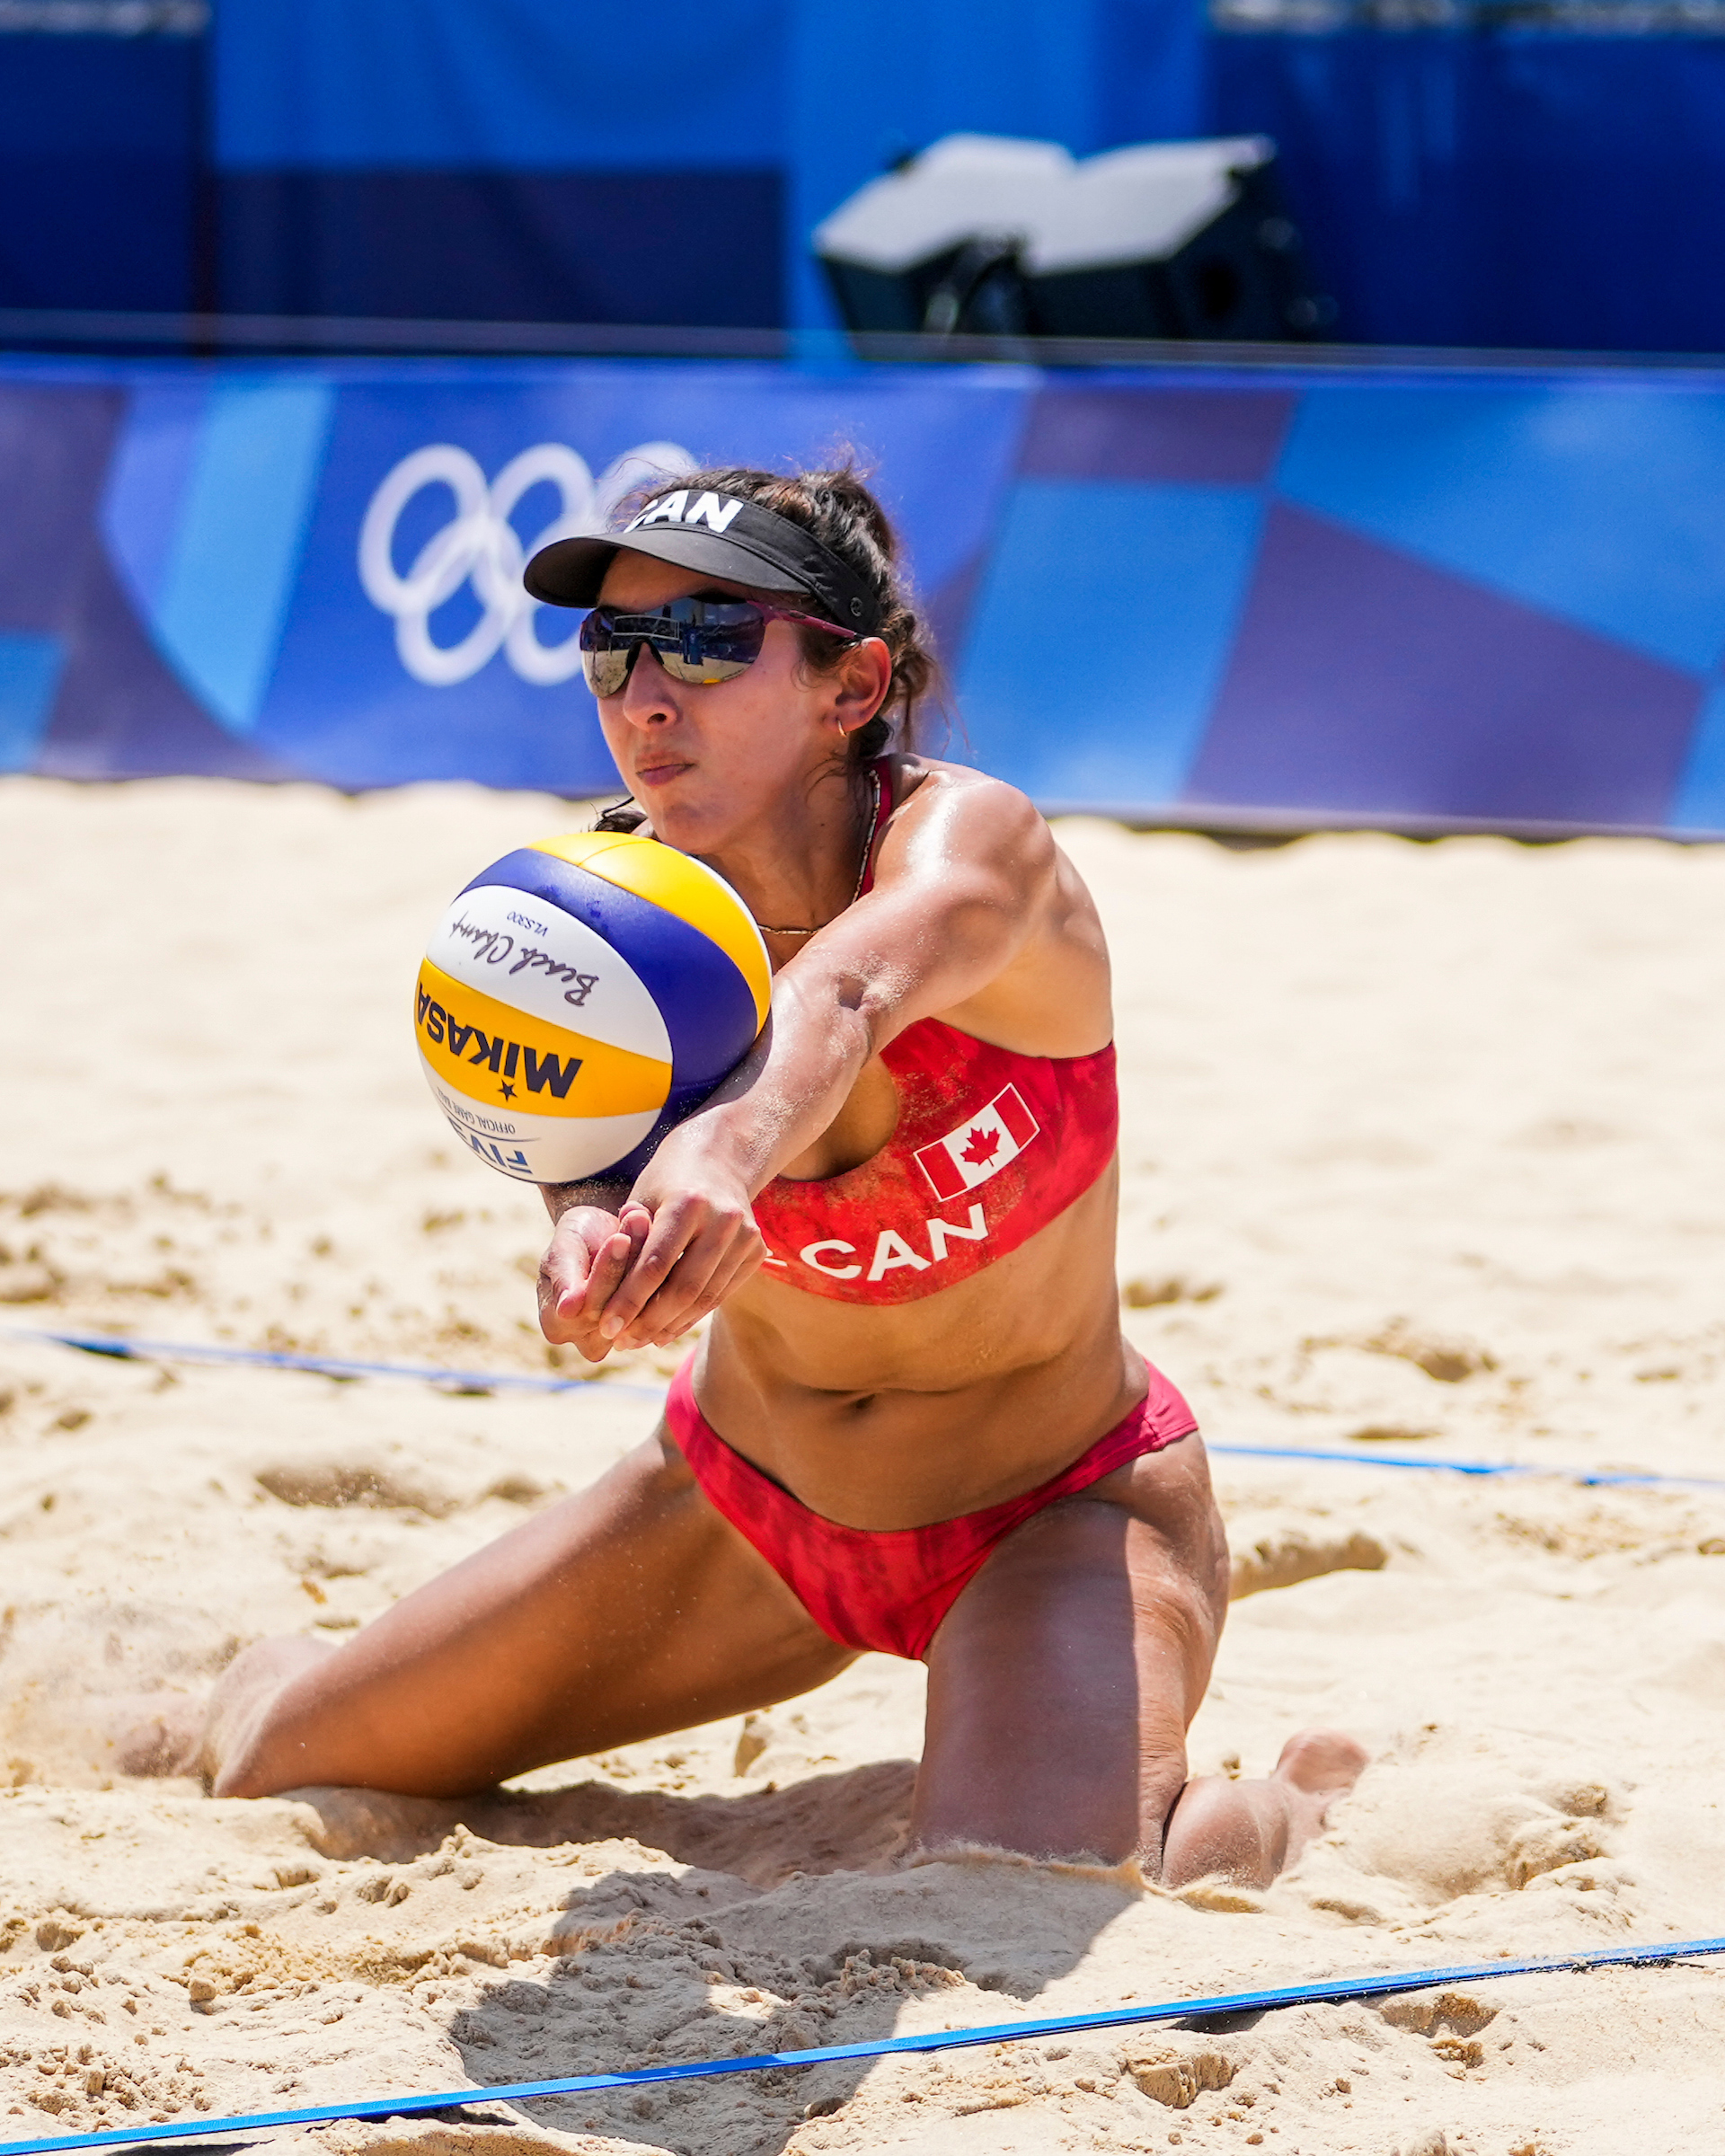 Beach volleyball player digs for a ball